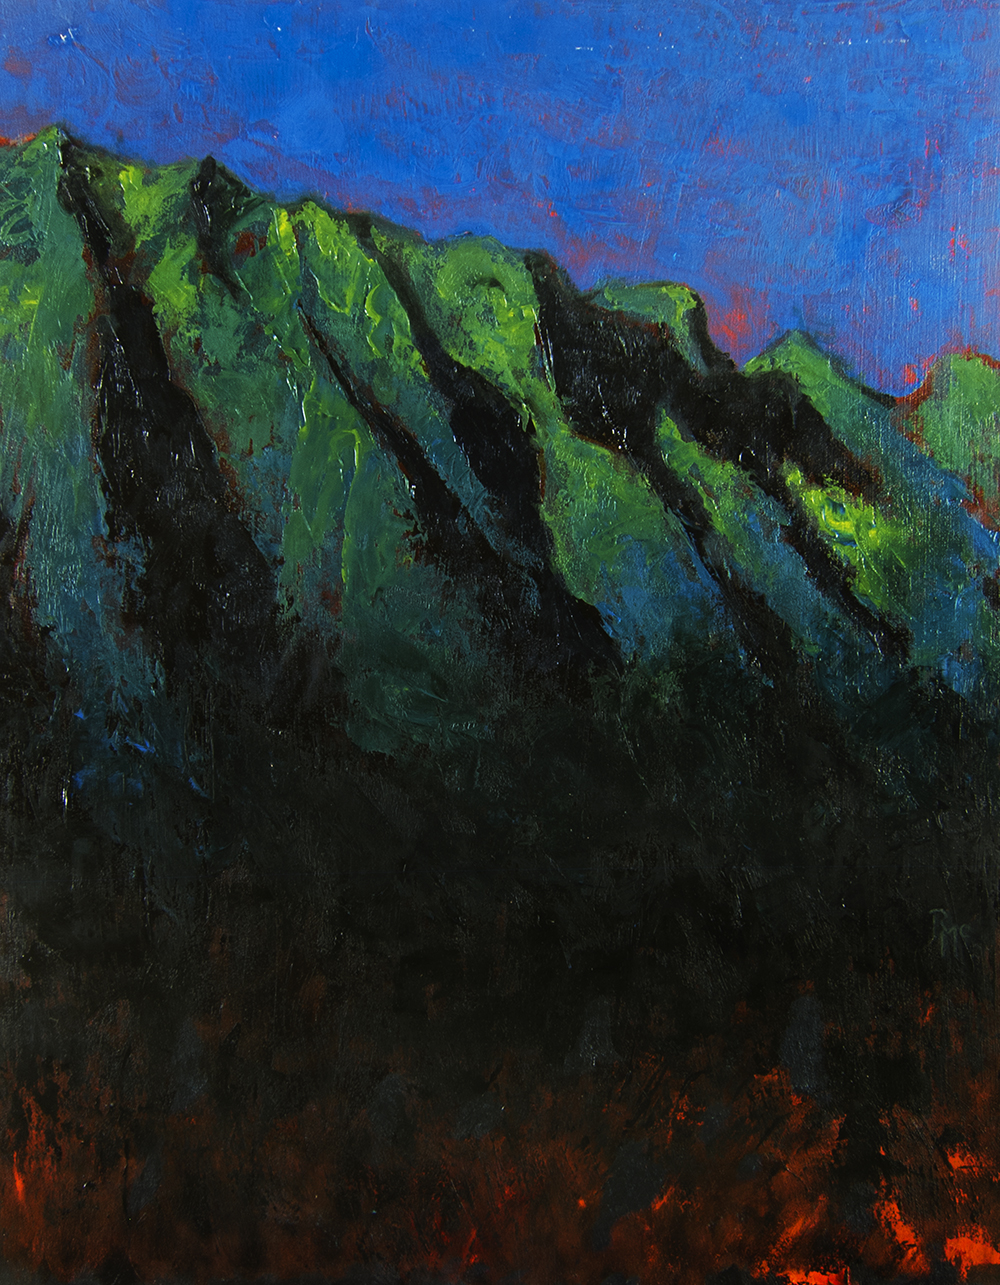 koolau_night.jpg